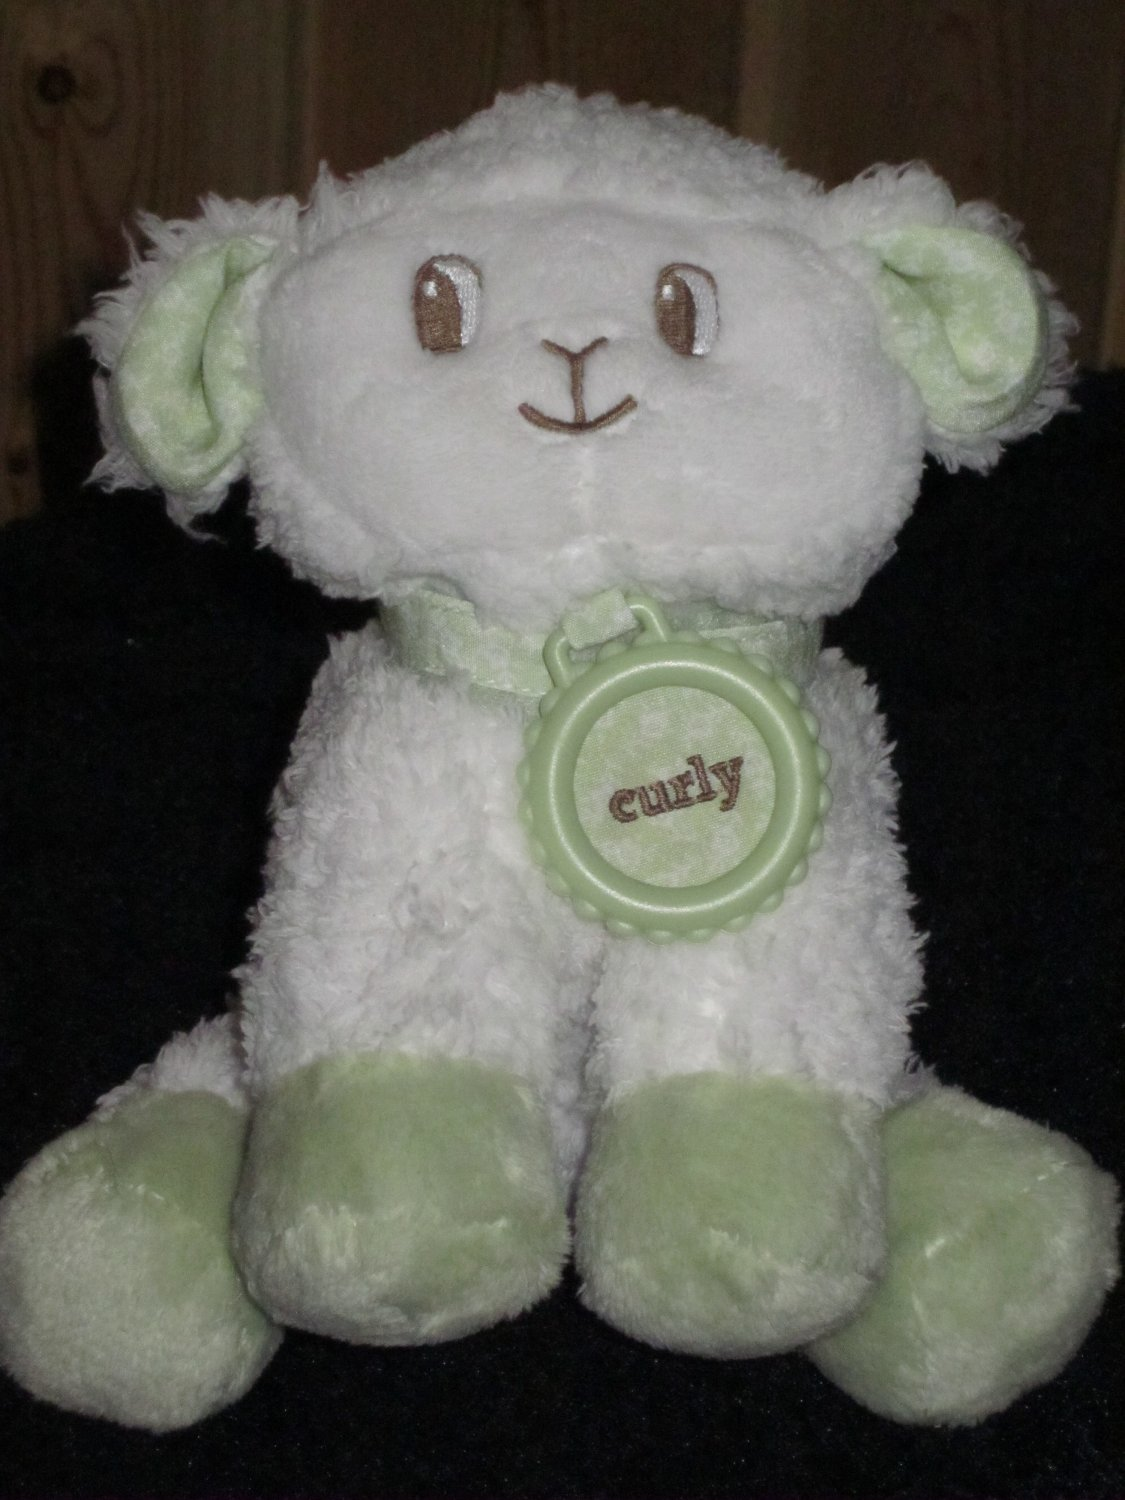 Amy Coe Plush Lamb Named Curly White and Green with a  Rattle inside